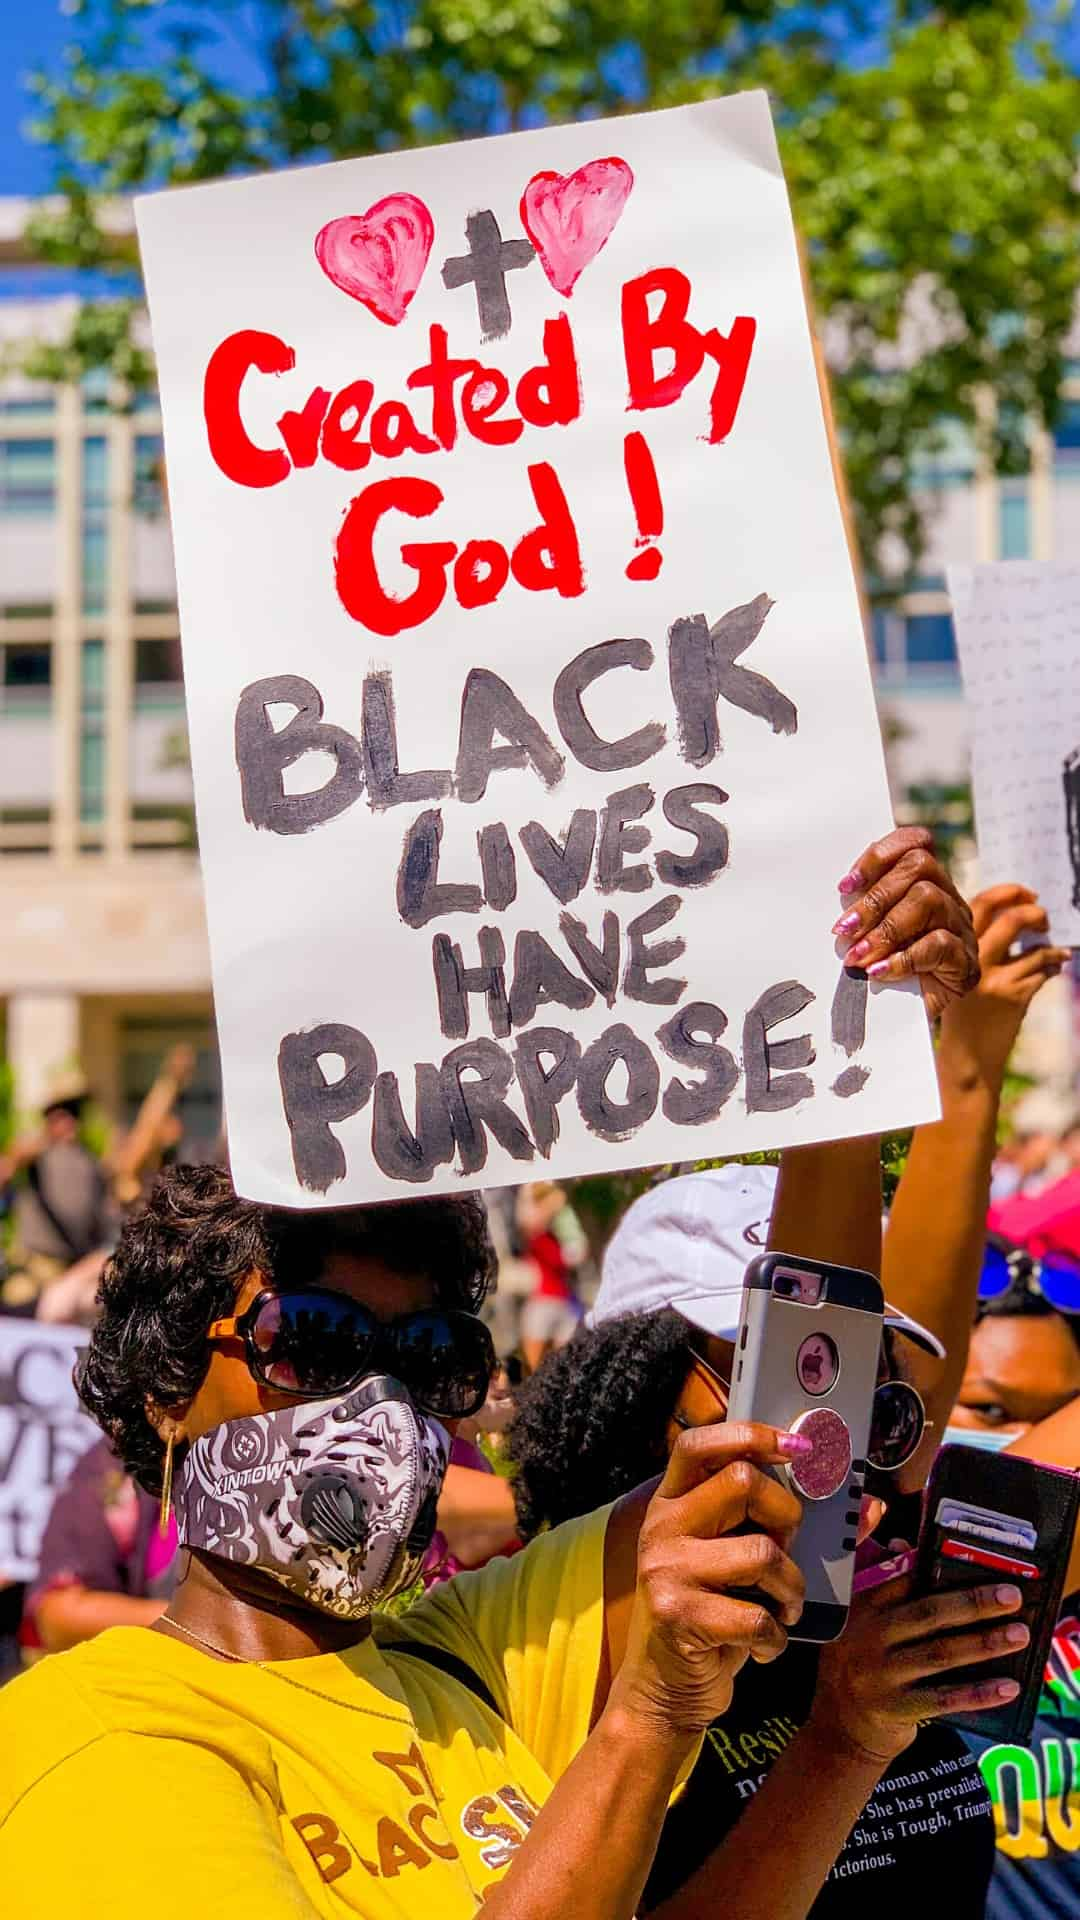 Black lives have a purpose protest sign